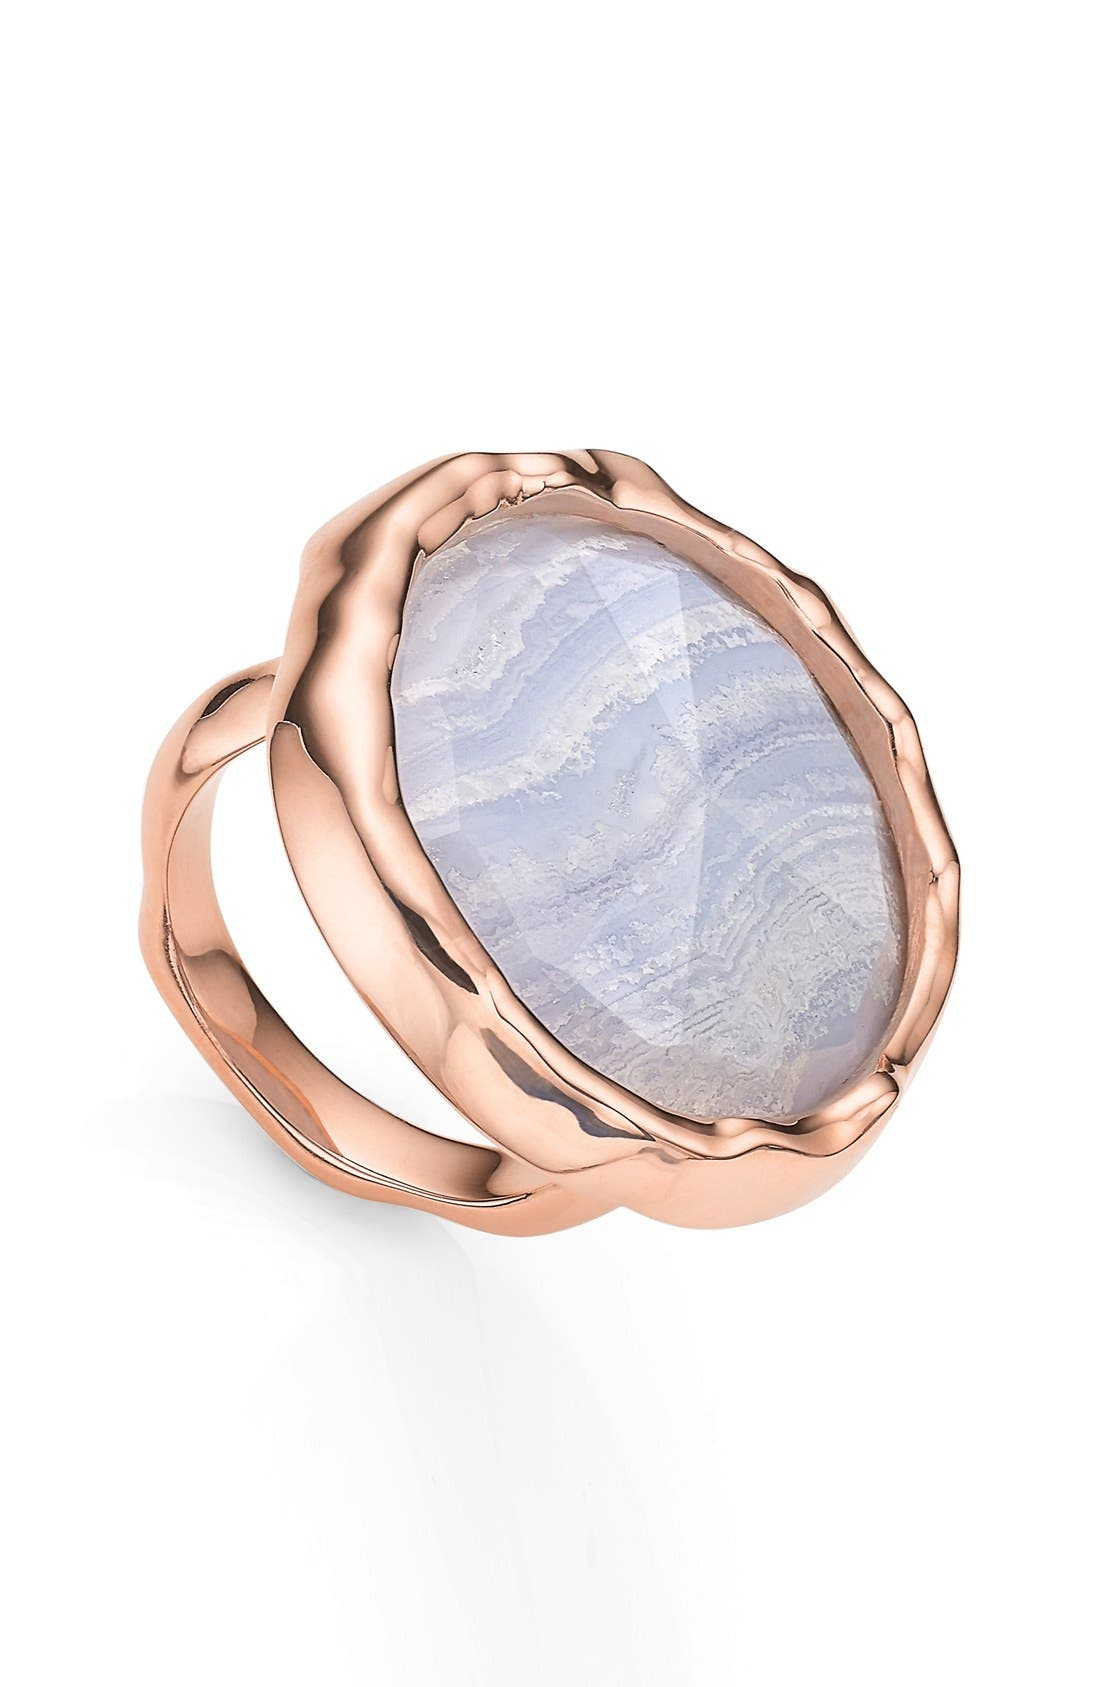 'Siren' Semiprecious Stone Ring,                         Main,                         color, Blue Lace Agate/ Rose Gold